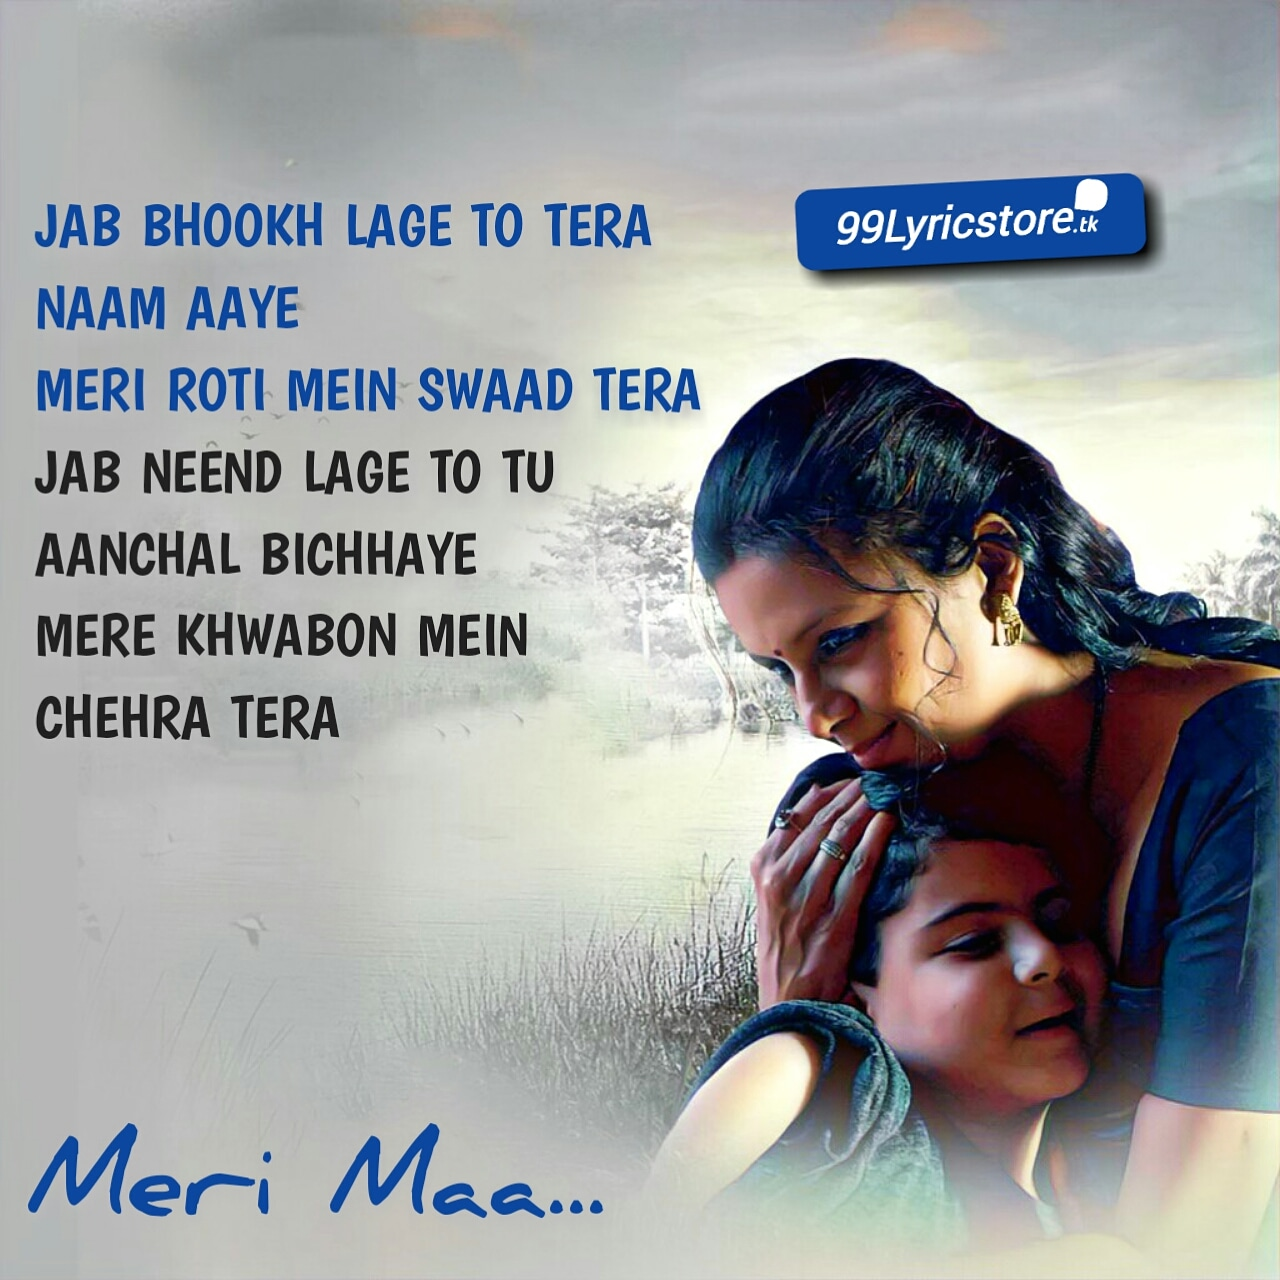 Latest Hindi Song 'Meri Maa' Sung by 'Sonu Nigam'  the Bollywood movie 'CYPHER', The movie features Parikshit Sahani, Vikram Gokhale, Arun Bali, Shishir Sharma, Divya Jagdale, Rajesh Sharma, Mukesh Bhatt in leading roles. Music composed of this song by Bharat Kamal and Lyrics written by Sagar Pathak. Song Label is T-Series.